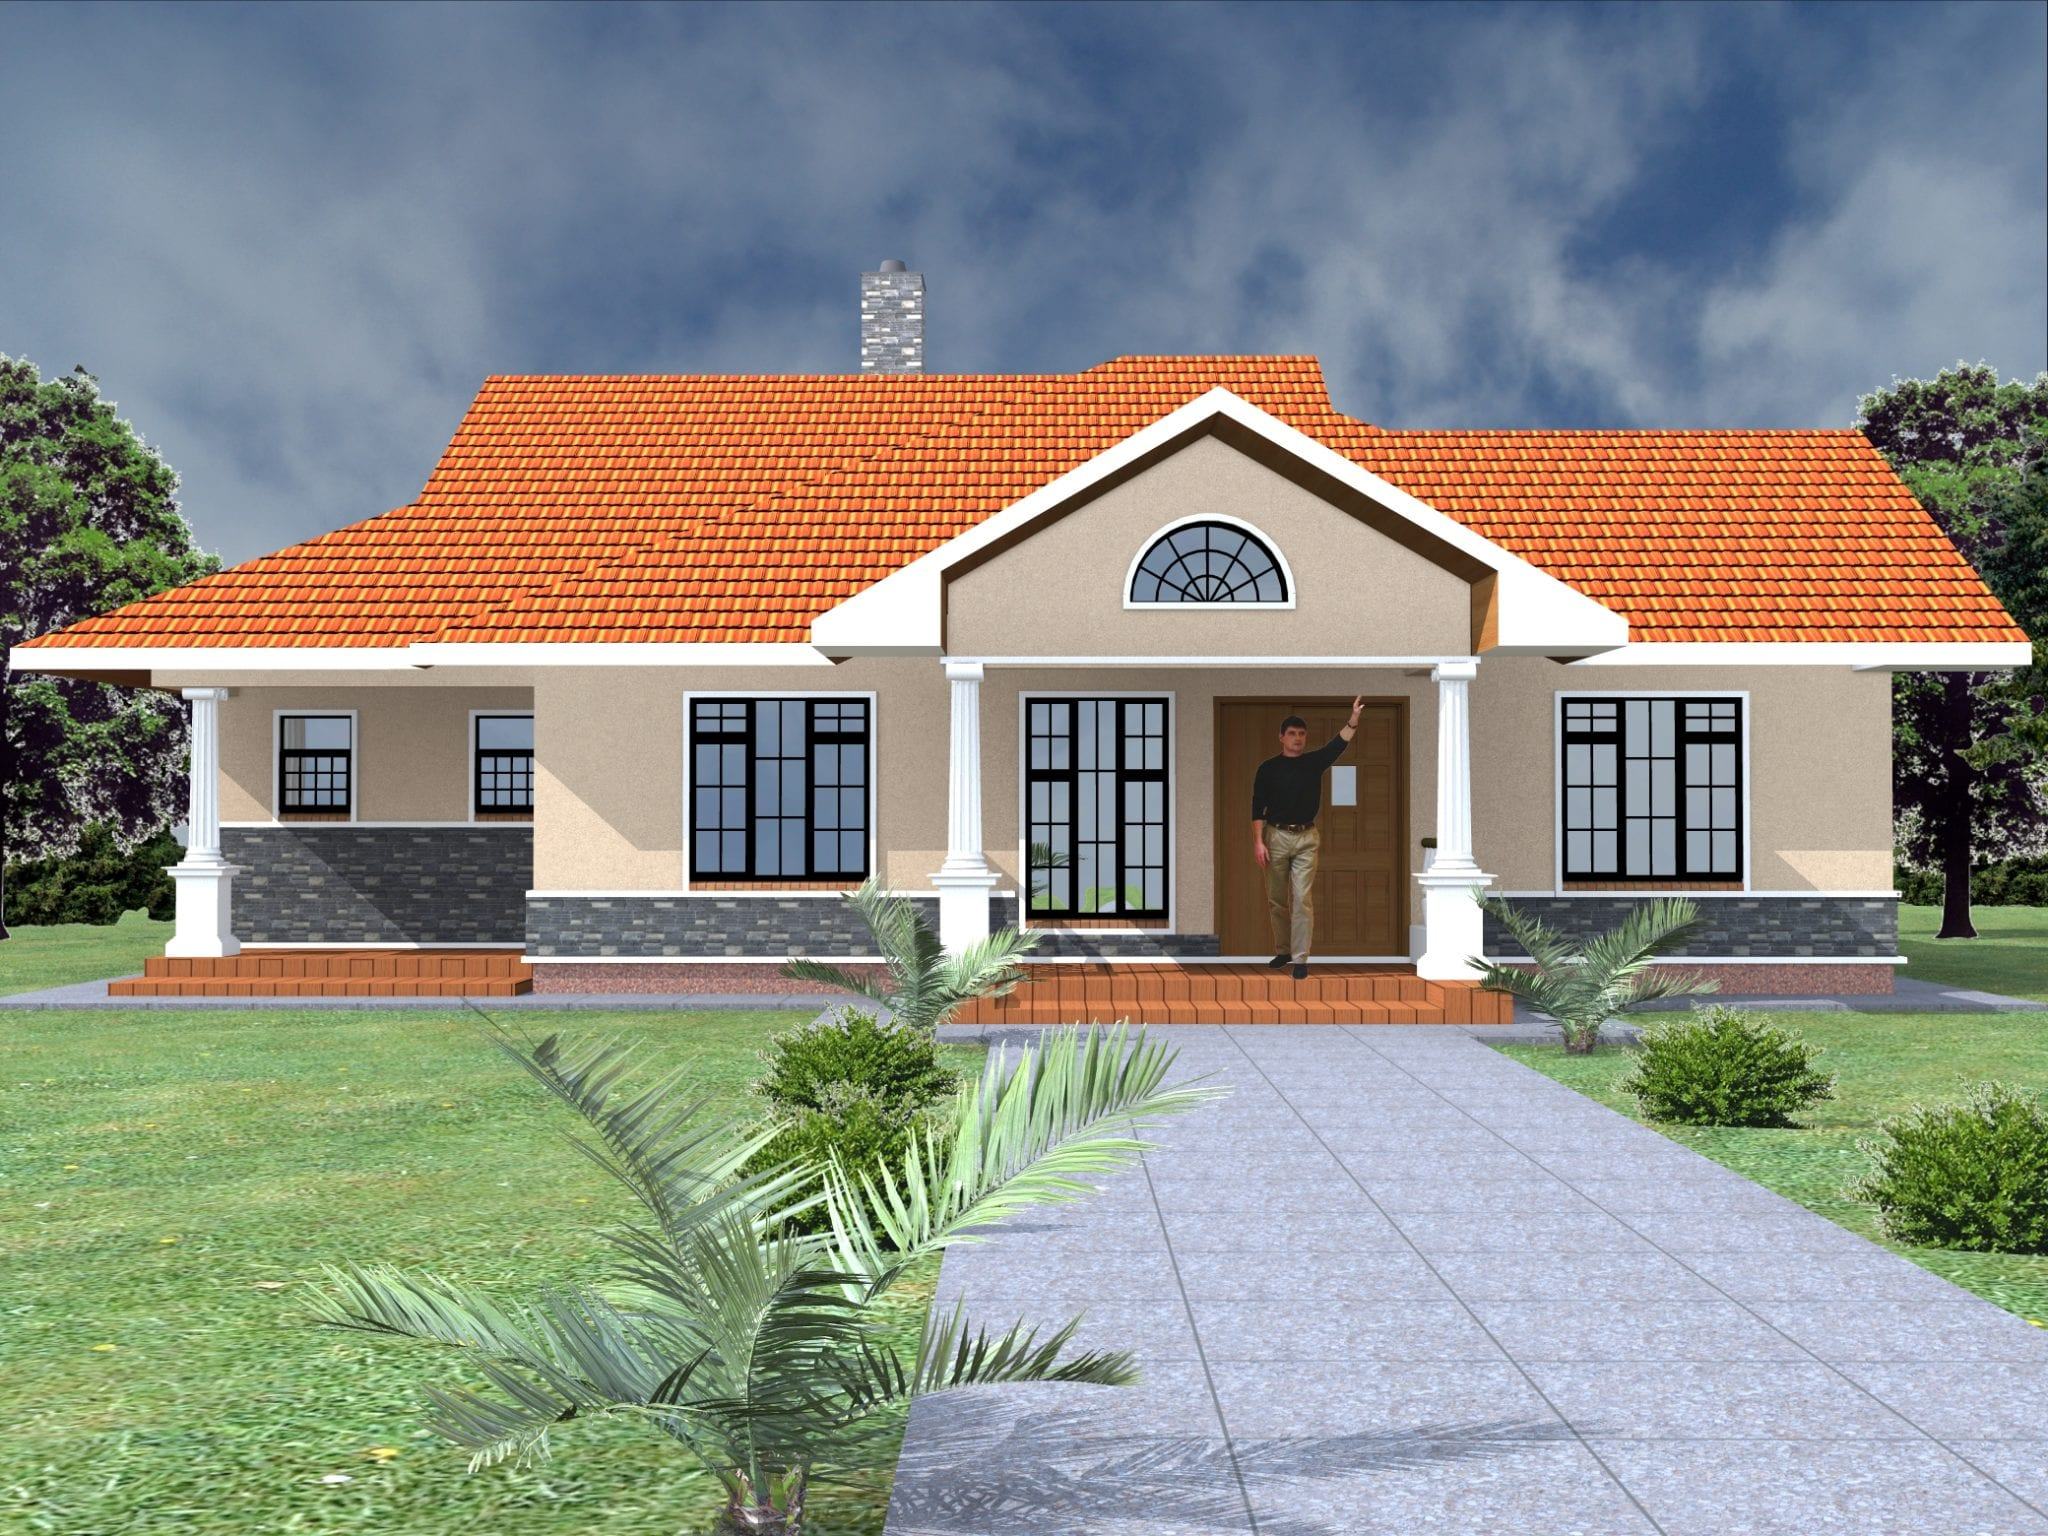 Three Bedroom Bungalow House Plans In Kenya Hpd Consult